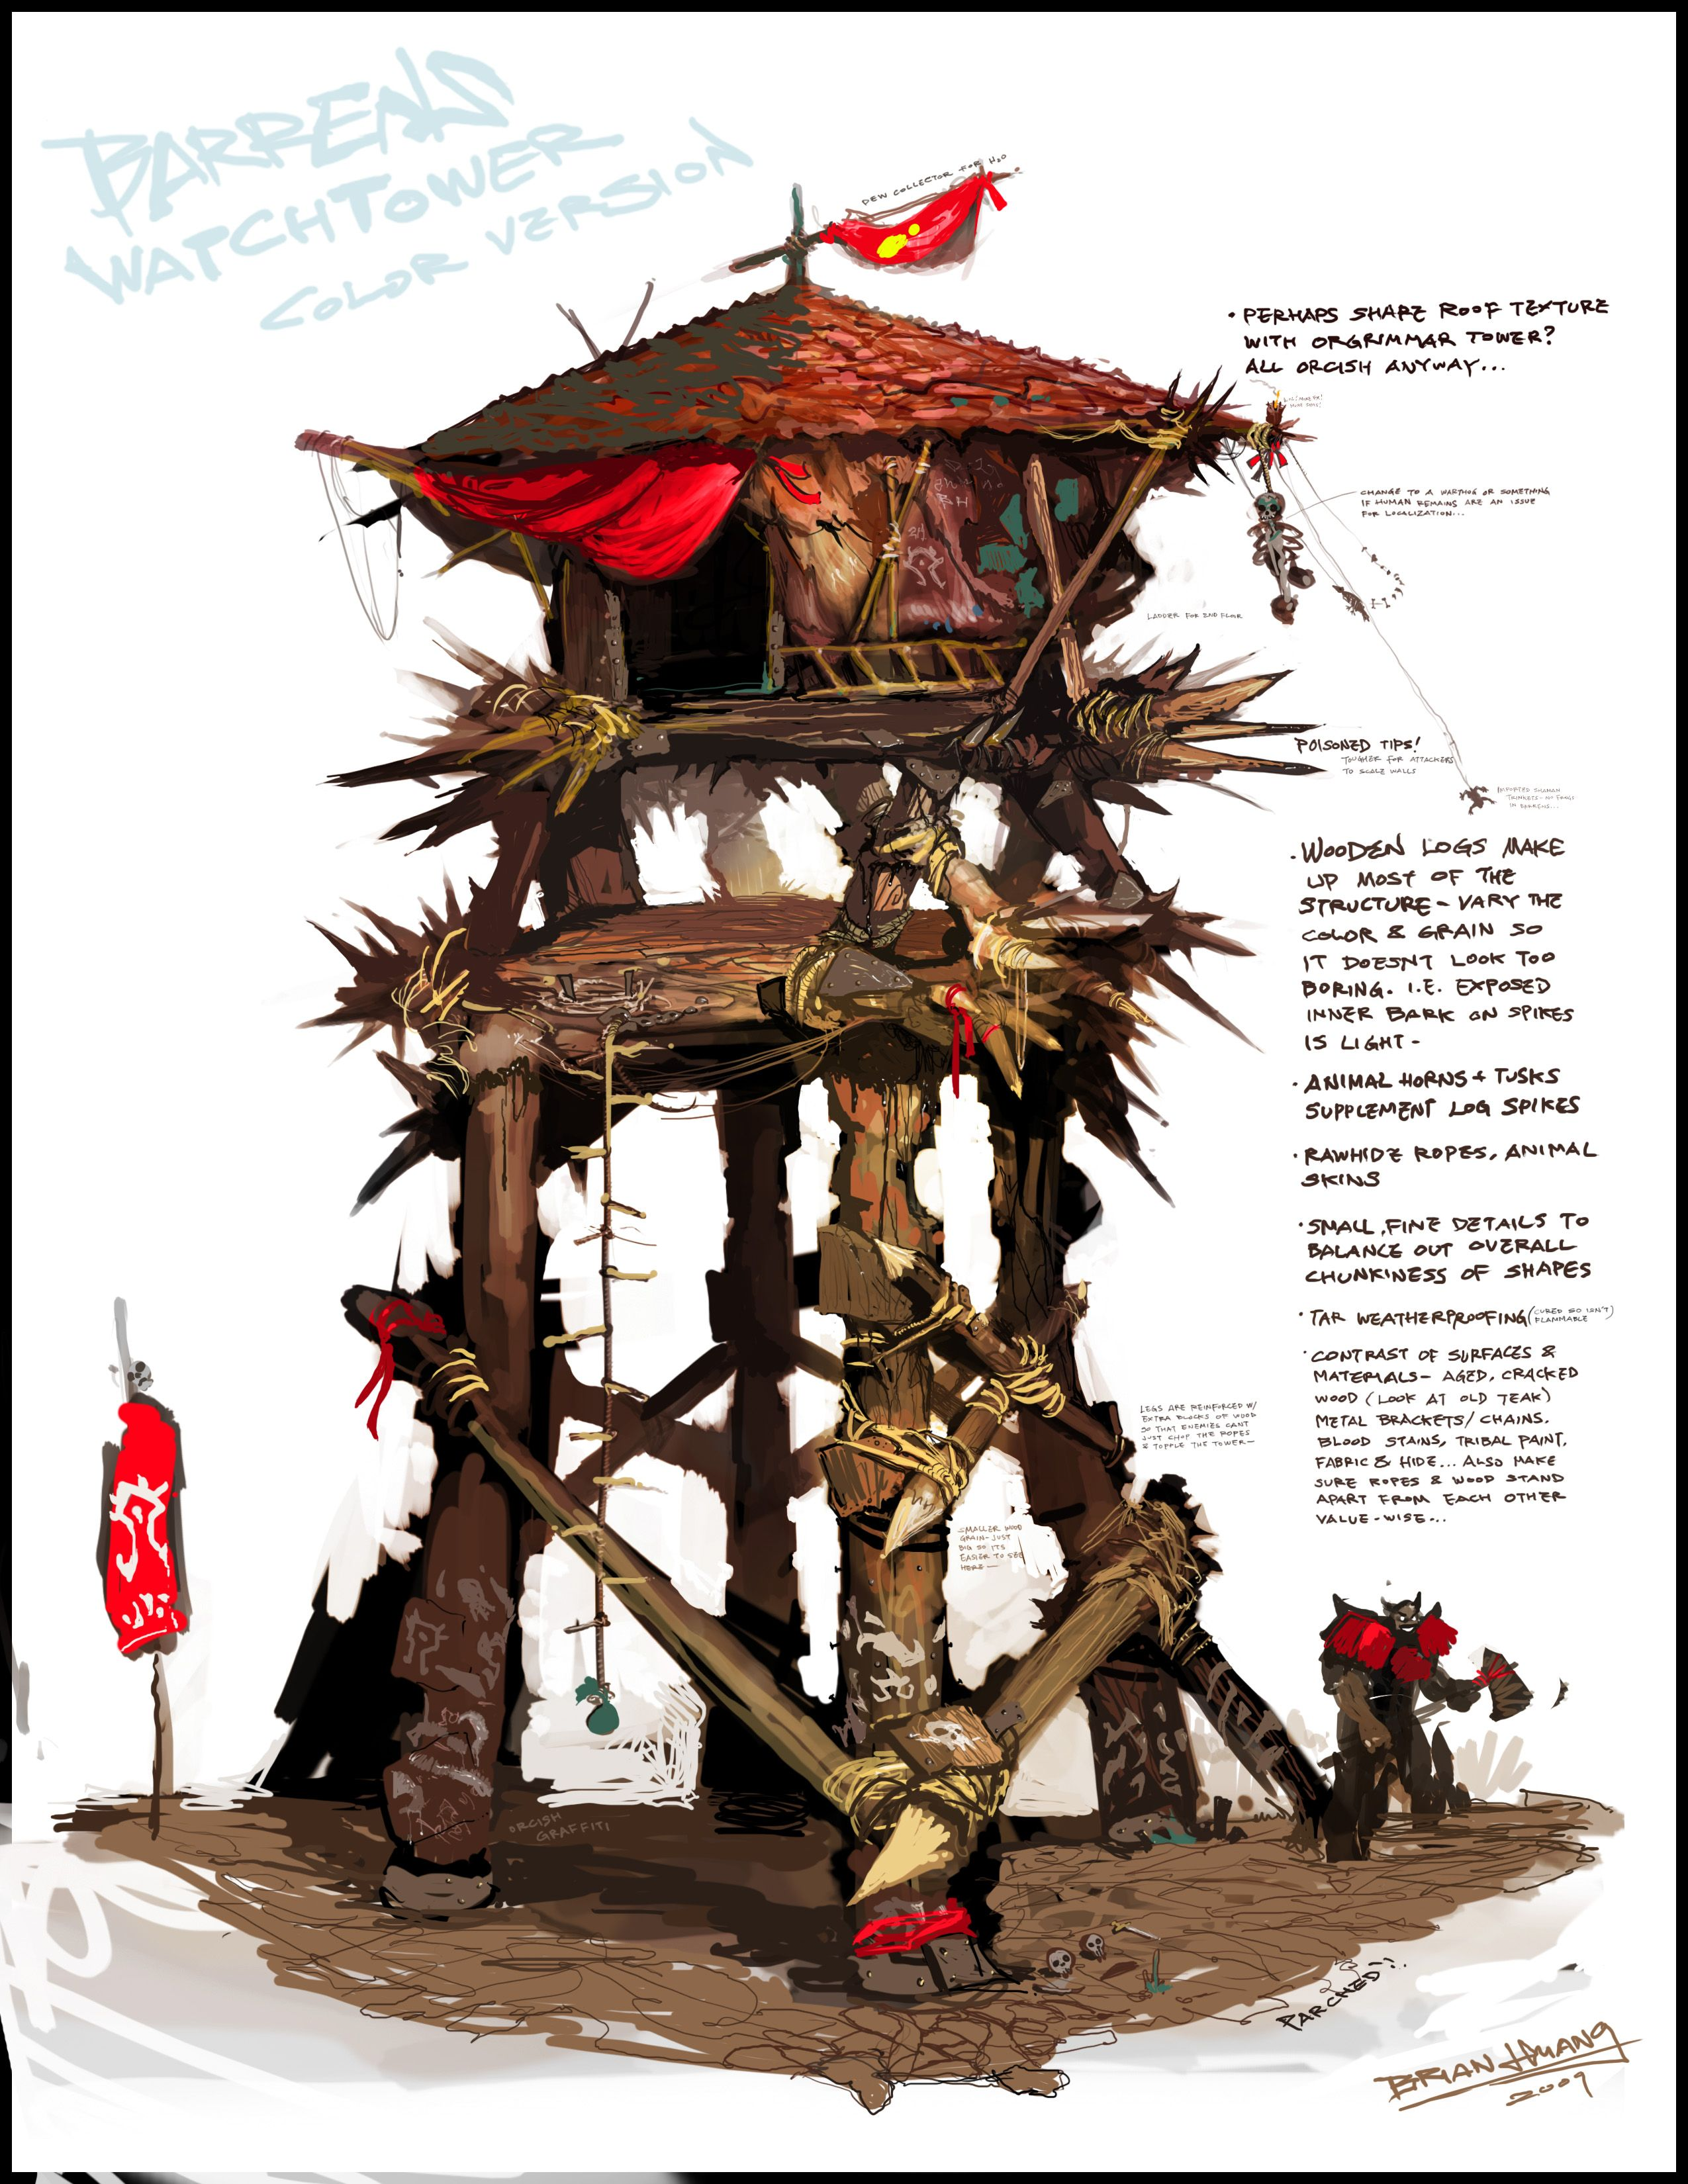 Orcish Battle Tower Used By Orc Trips To Survey Areas For Raiding